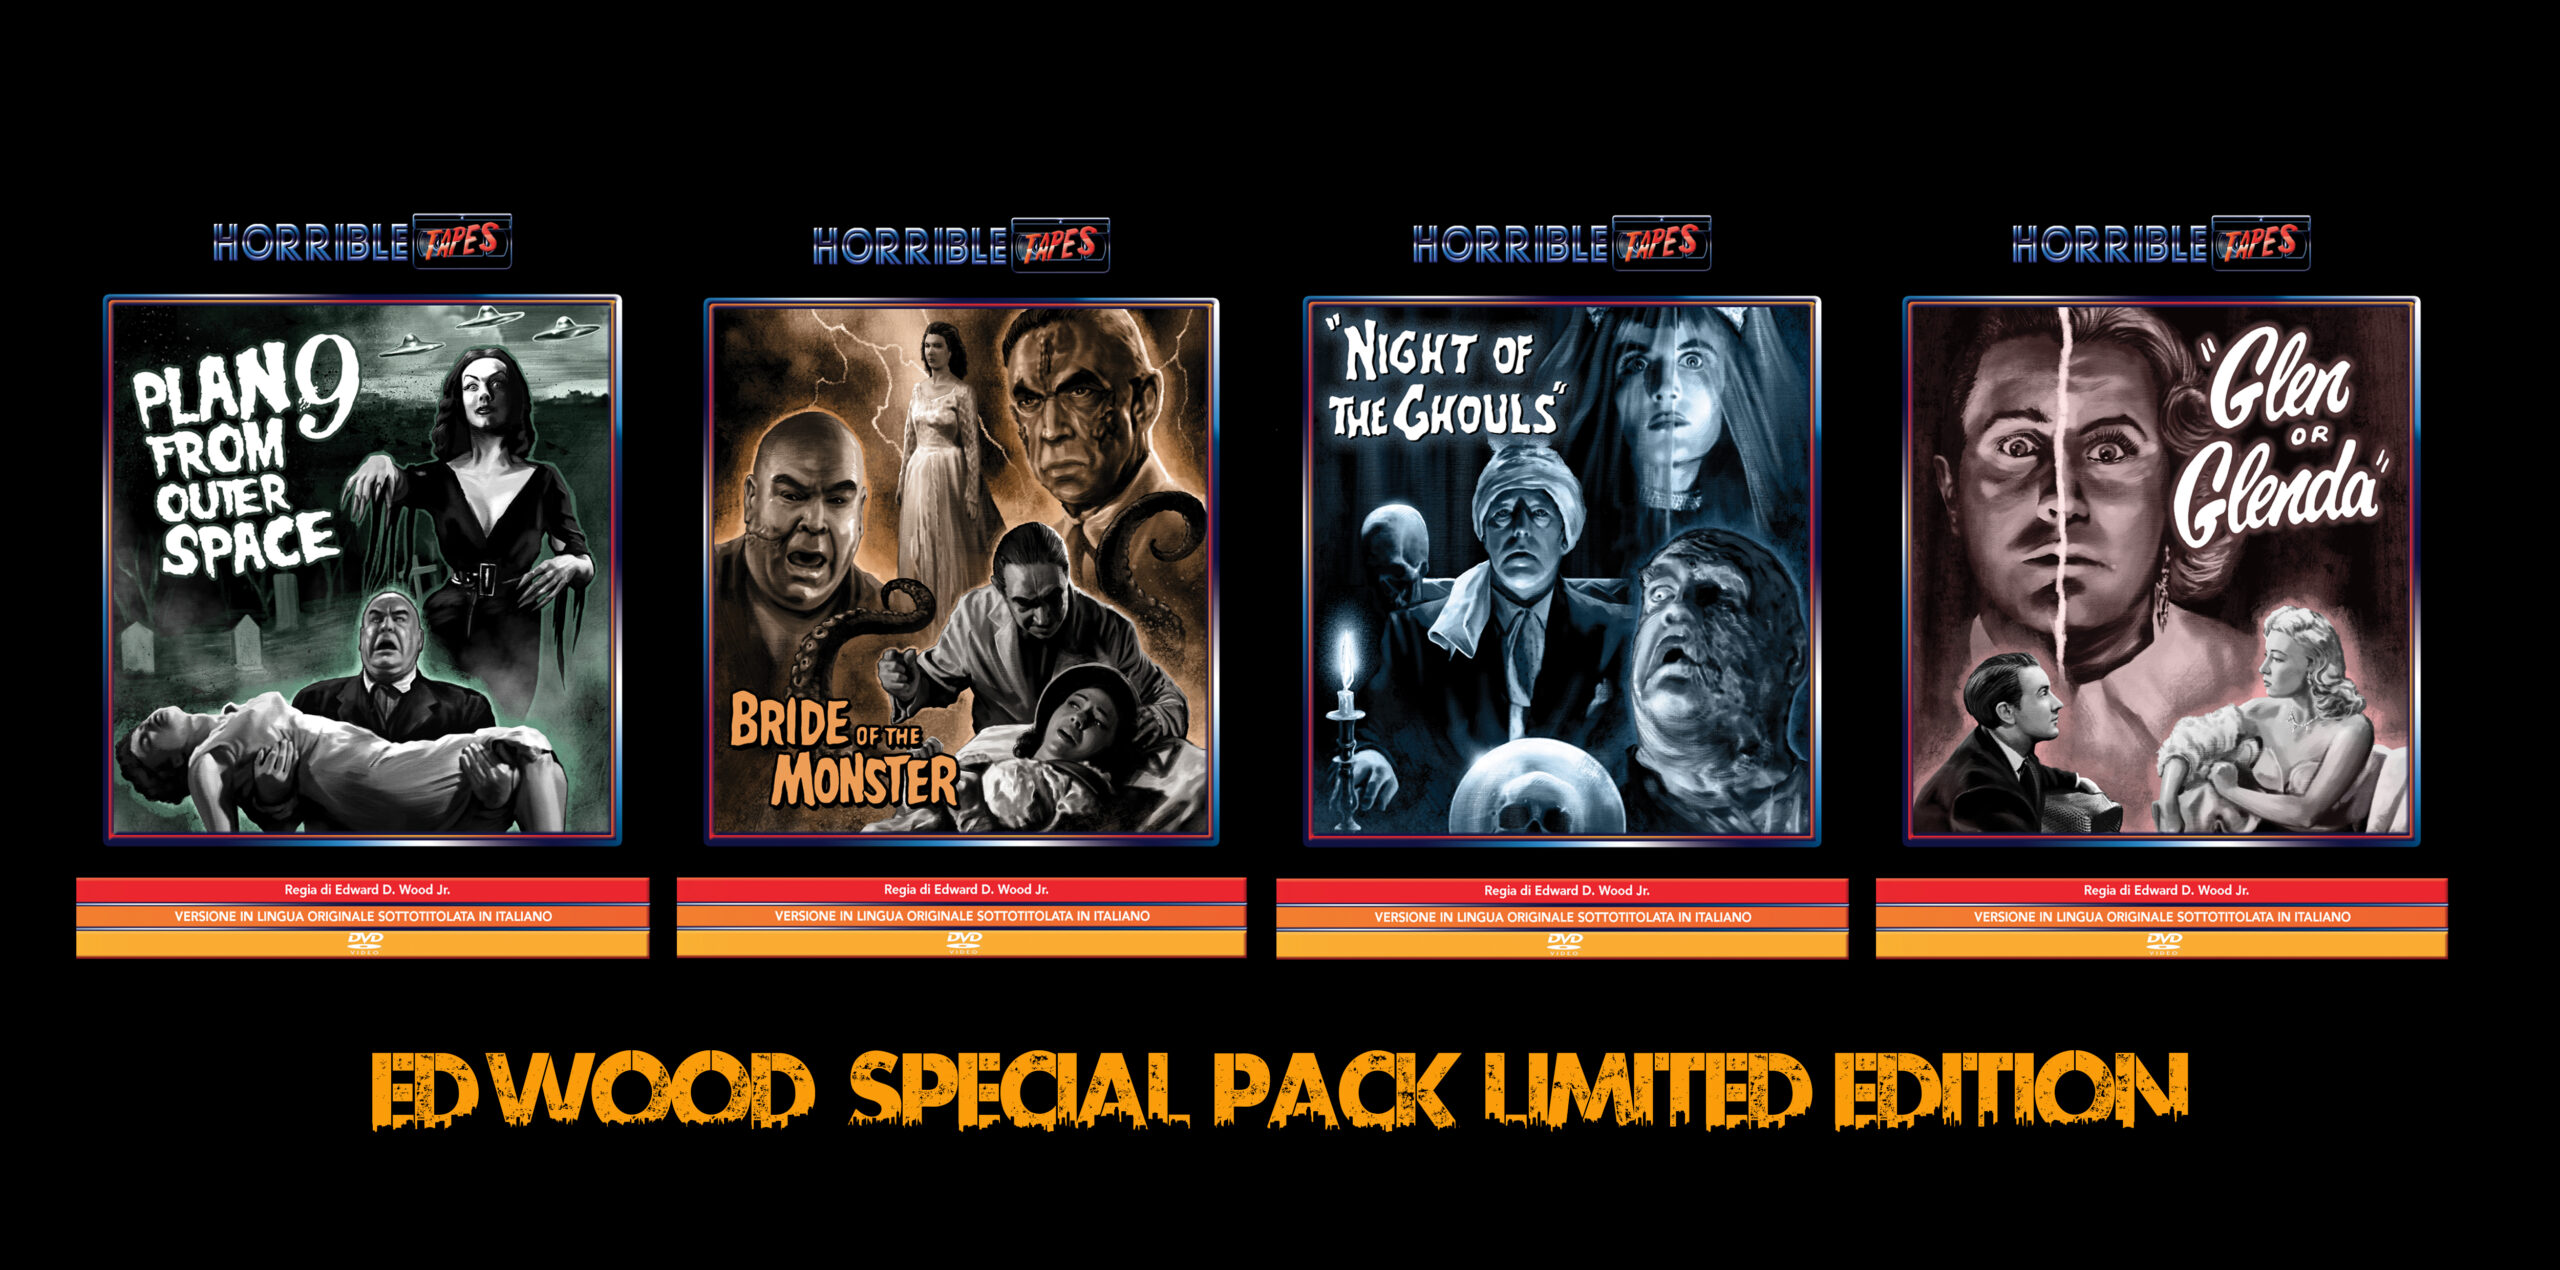 Ed Wood Special Pack Limited Edition Promo